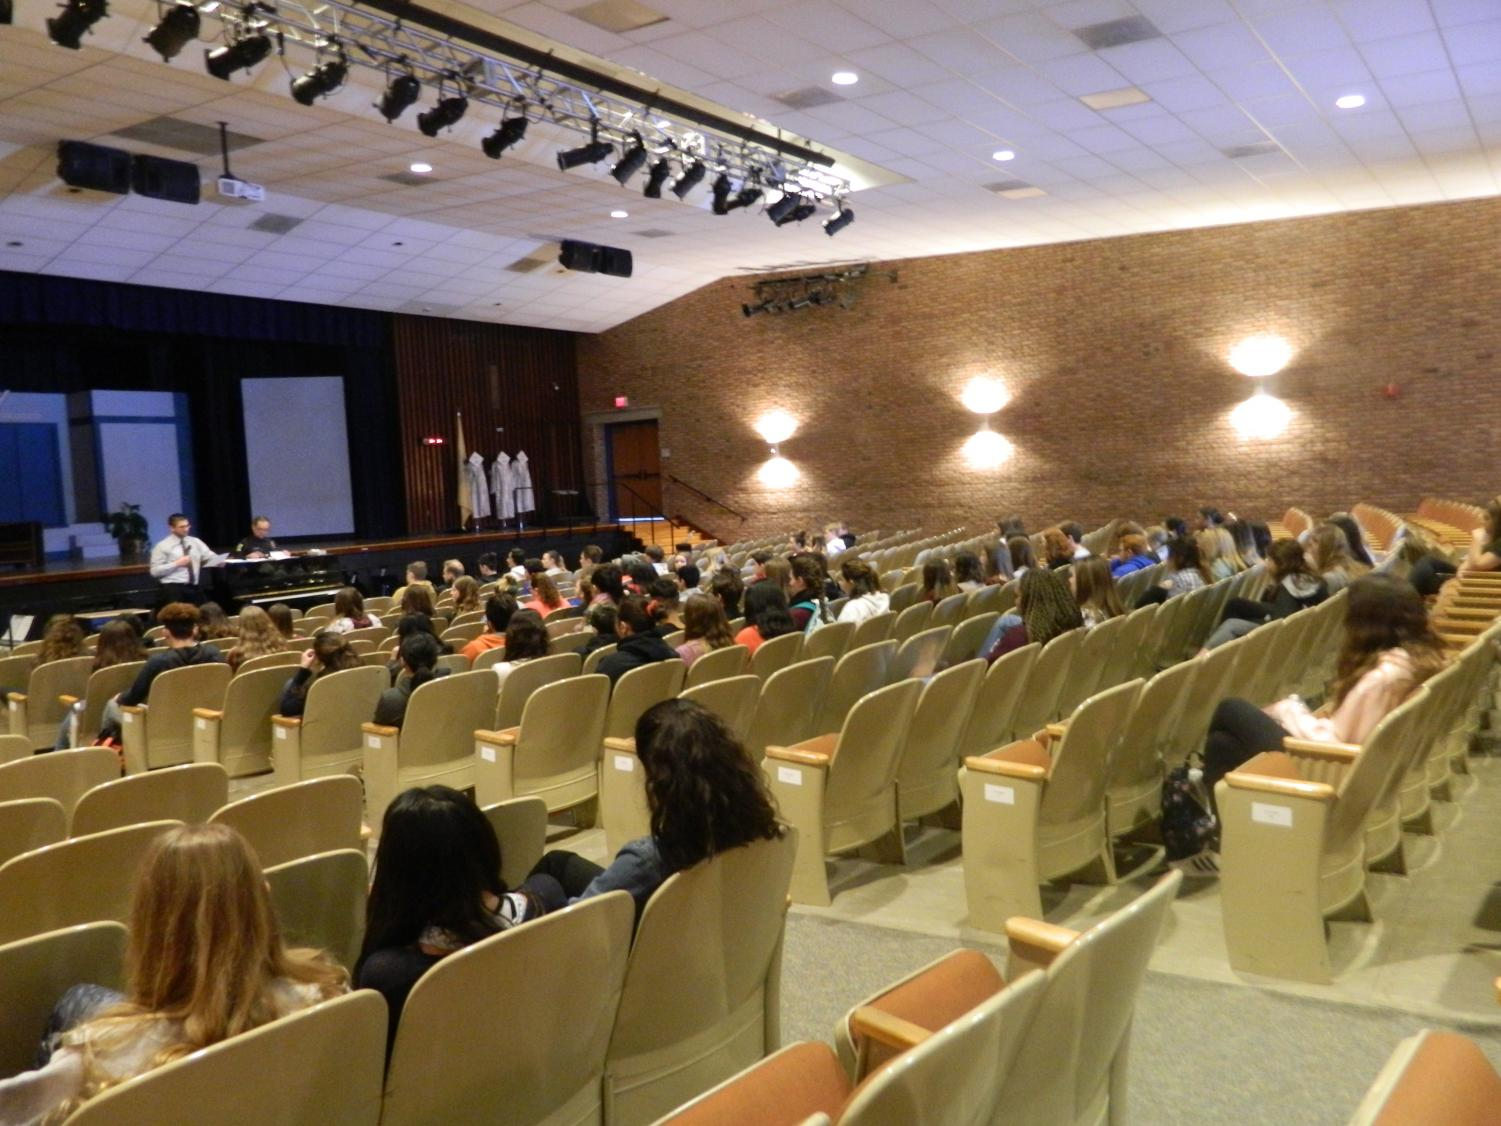 Principal Christopher Kavcak speaking at a security forum in response to student protest. (Photo by Kirsten Dorman)